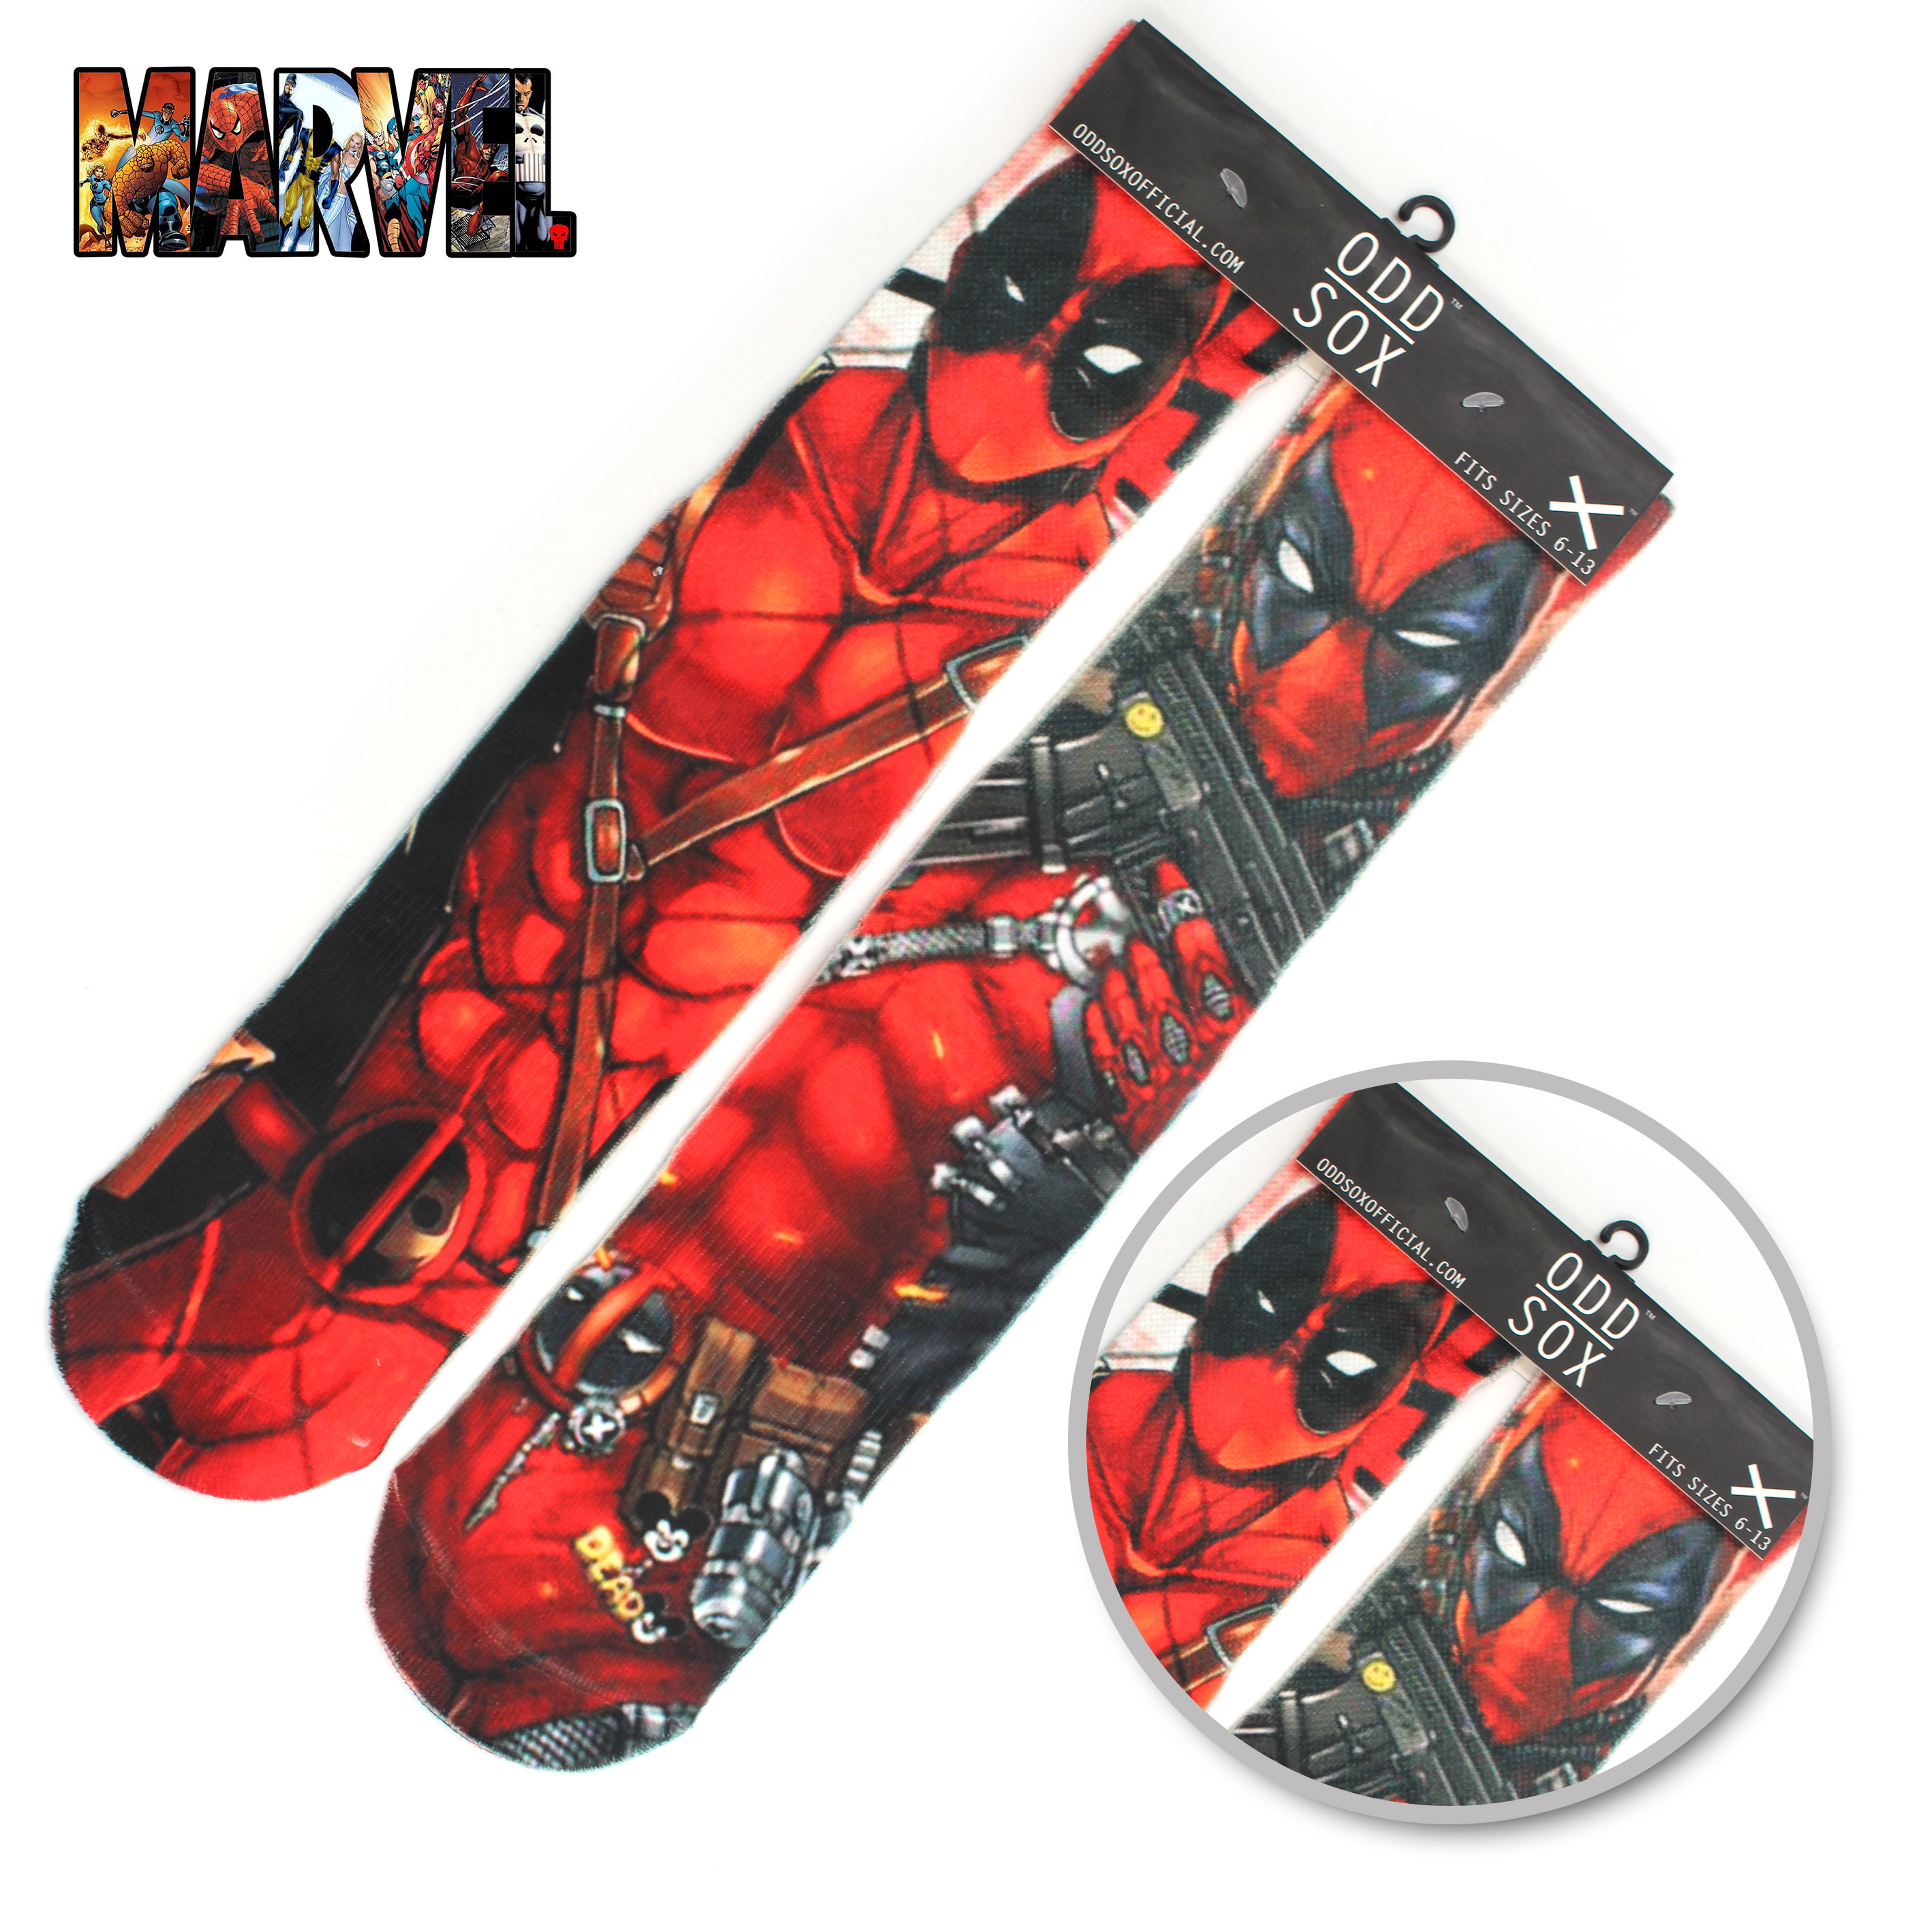 4x16-font-b-marvel-b-font-avengers-deadpool-symbol-red-short-cotton-socks-colorful-stockings-warm-tights-cosplay-costume-unisex-fashion-gifts